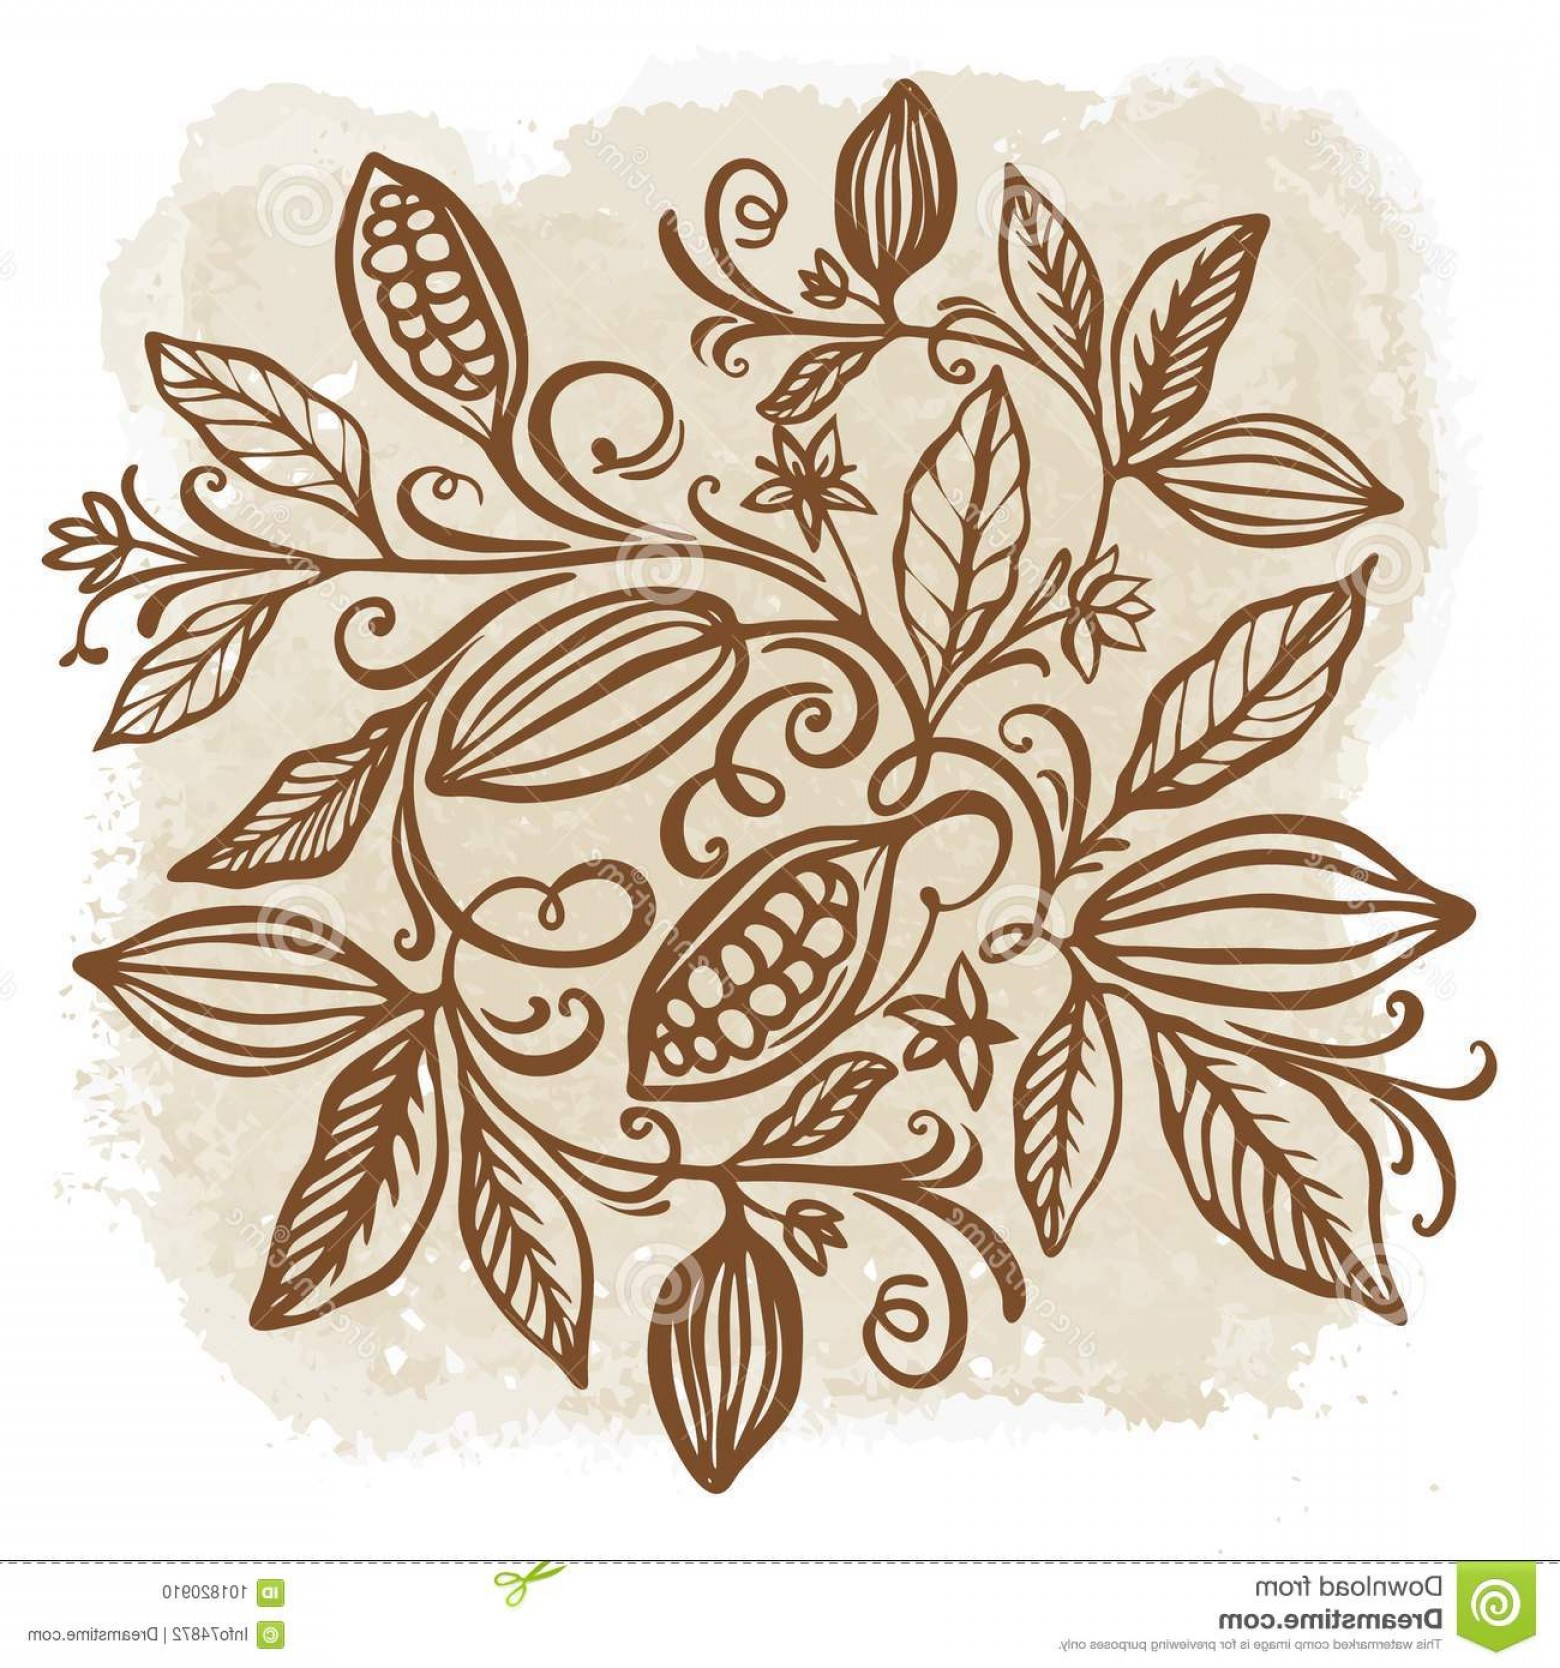 Chocolate Vector Plant: Cocoa Beans Illustration Chocolate Cocoa Beans Vector Illustra Cocoa Beans Illustration Chocolate Cocoa Beans Image